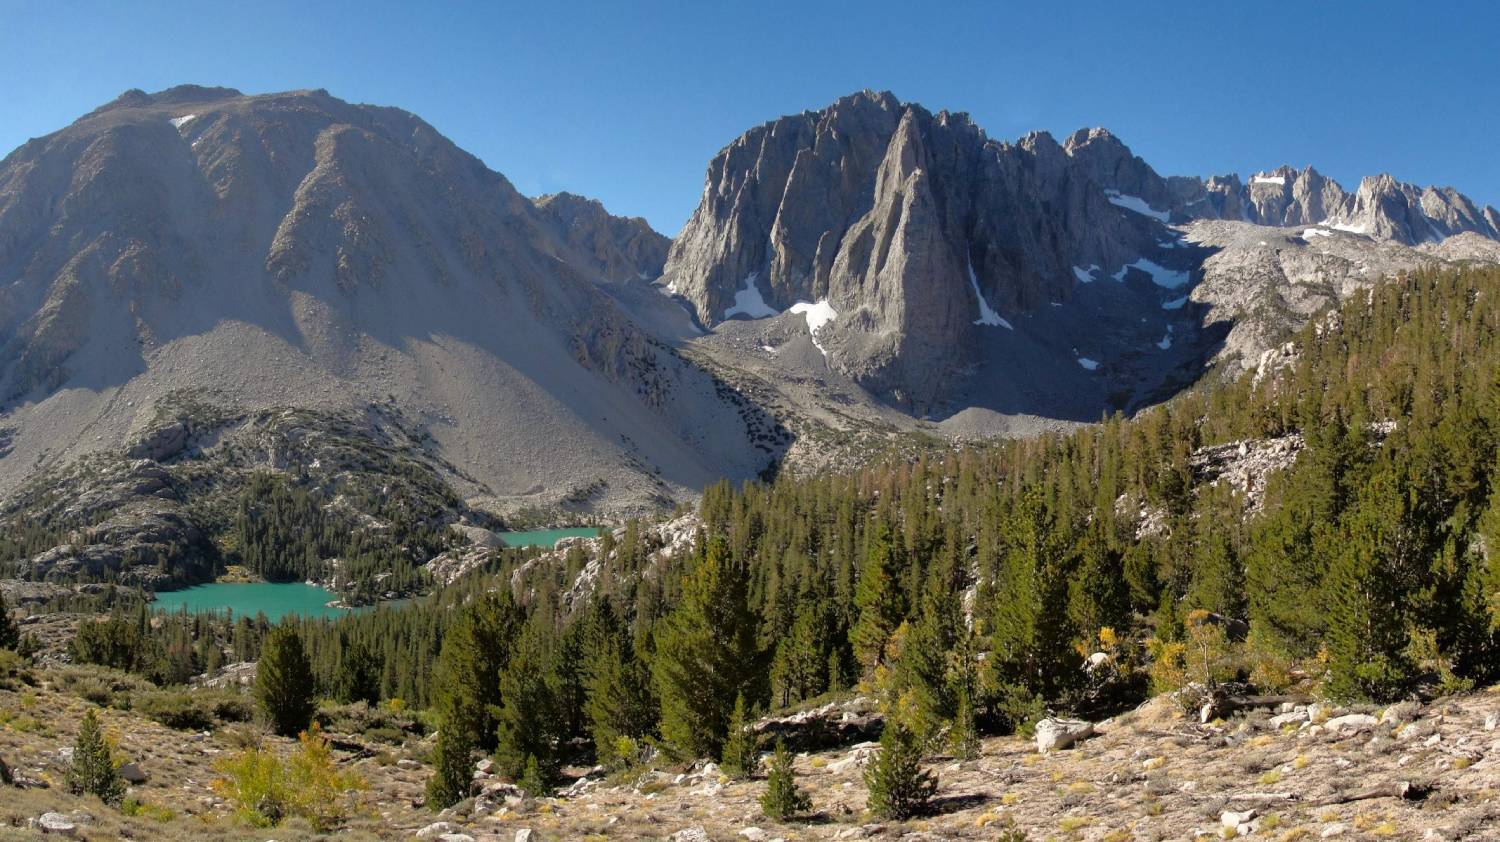 Sierra Nevada - The Best Places To Visit In Spain